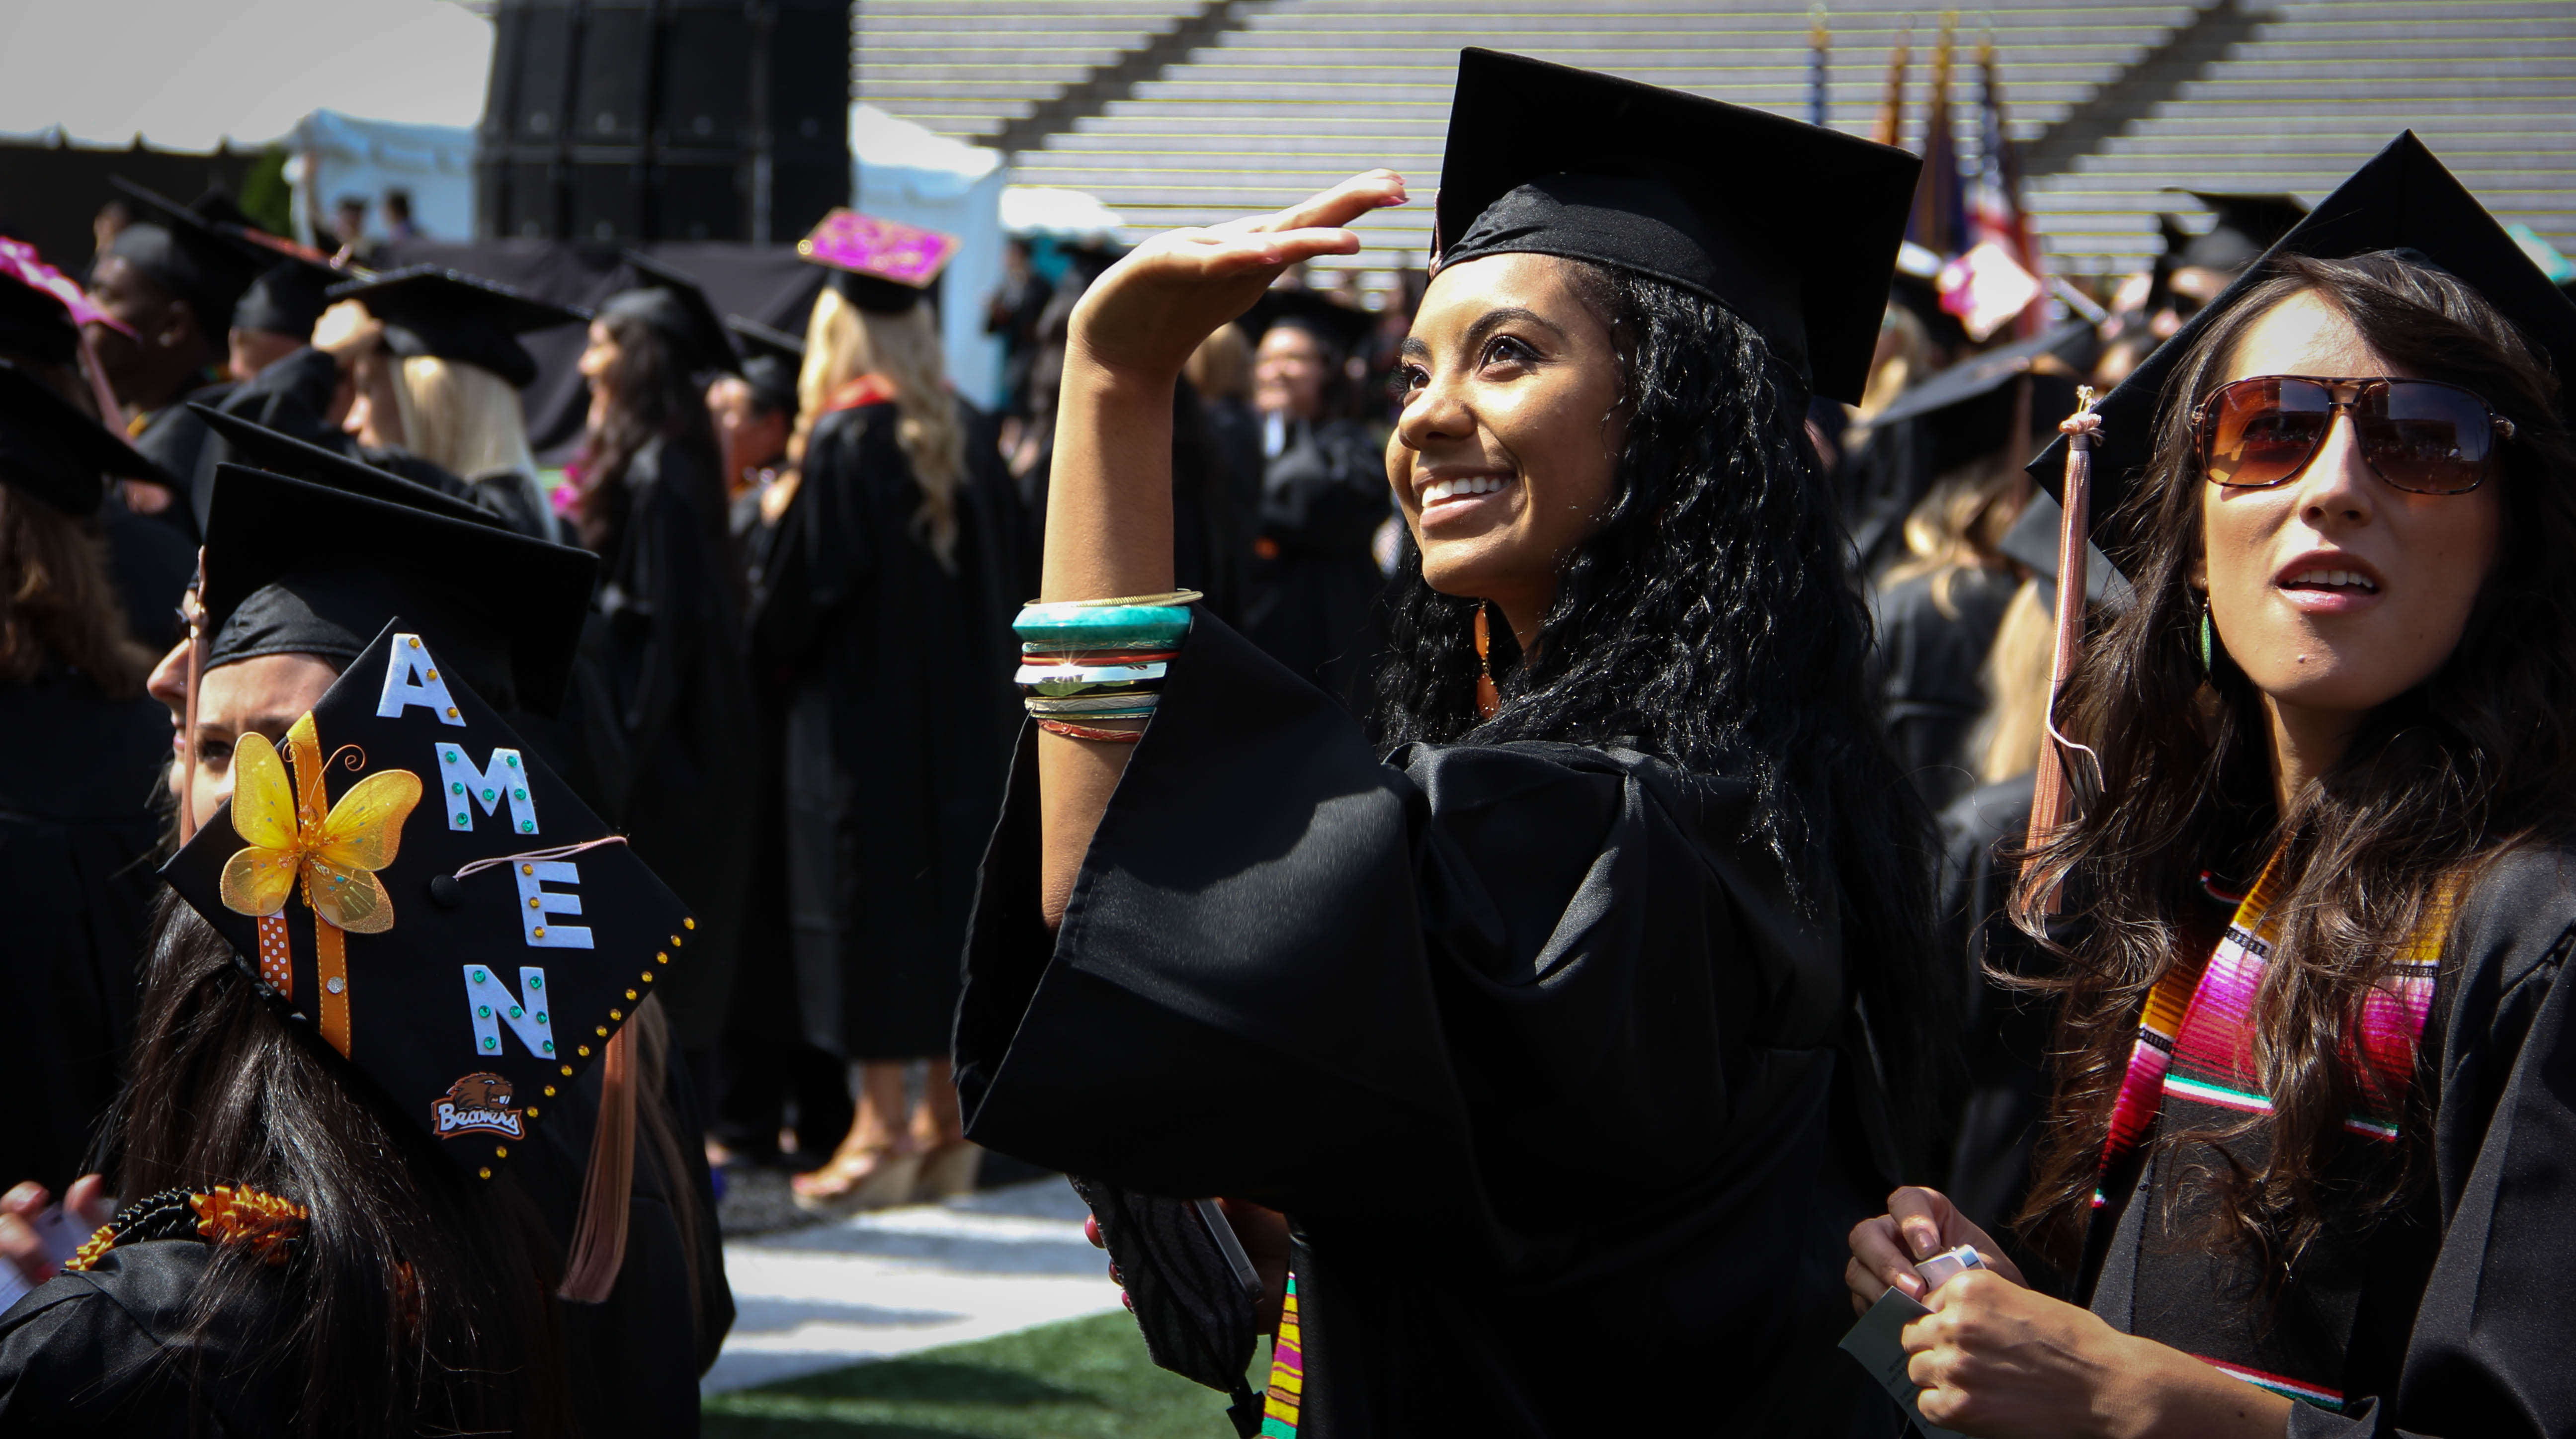 congratulations graduates college of liberal arts oregon osu will hold its 144th annual commencement ceremony on saturday 15 at reser stadium osu s record class of 5 221 graduates includes 2 654 women and